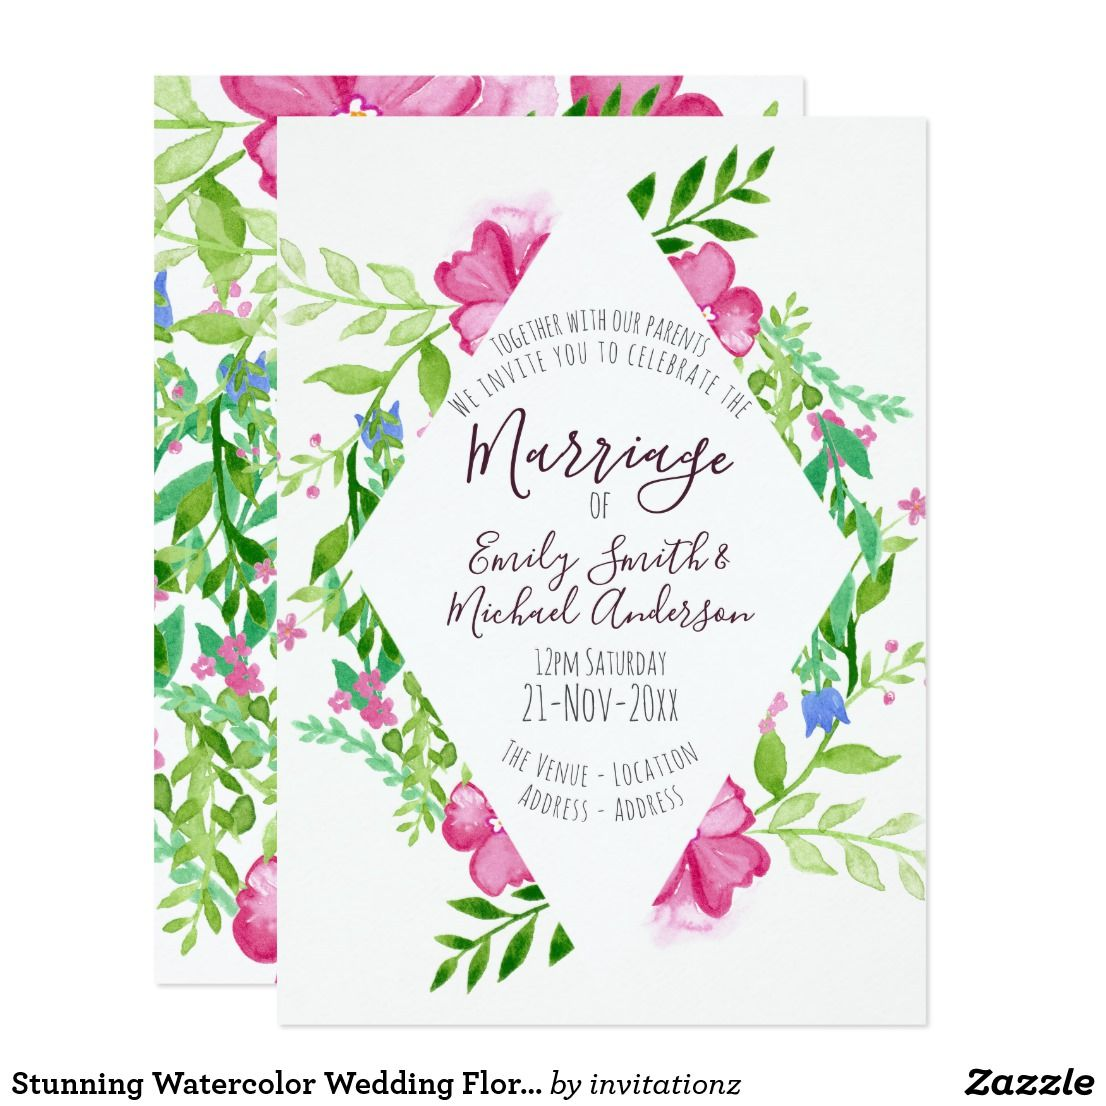 Wedding decorations with lights november 2018 Stunning Watercolor Wedding Floral Wreath Invitate Card  Trending